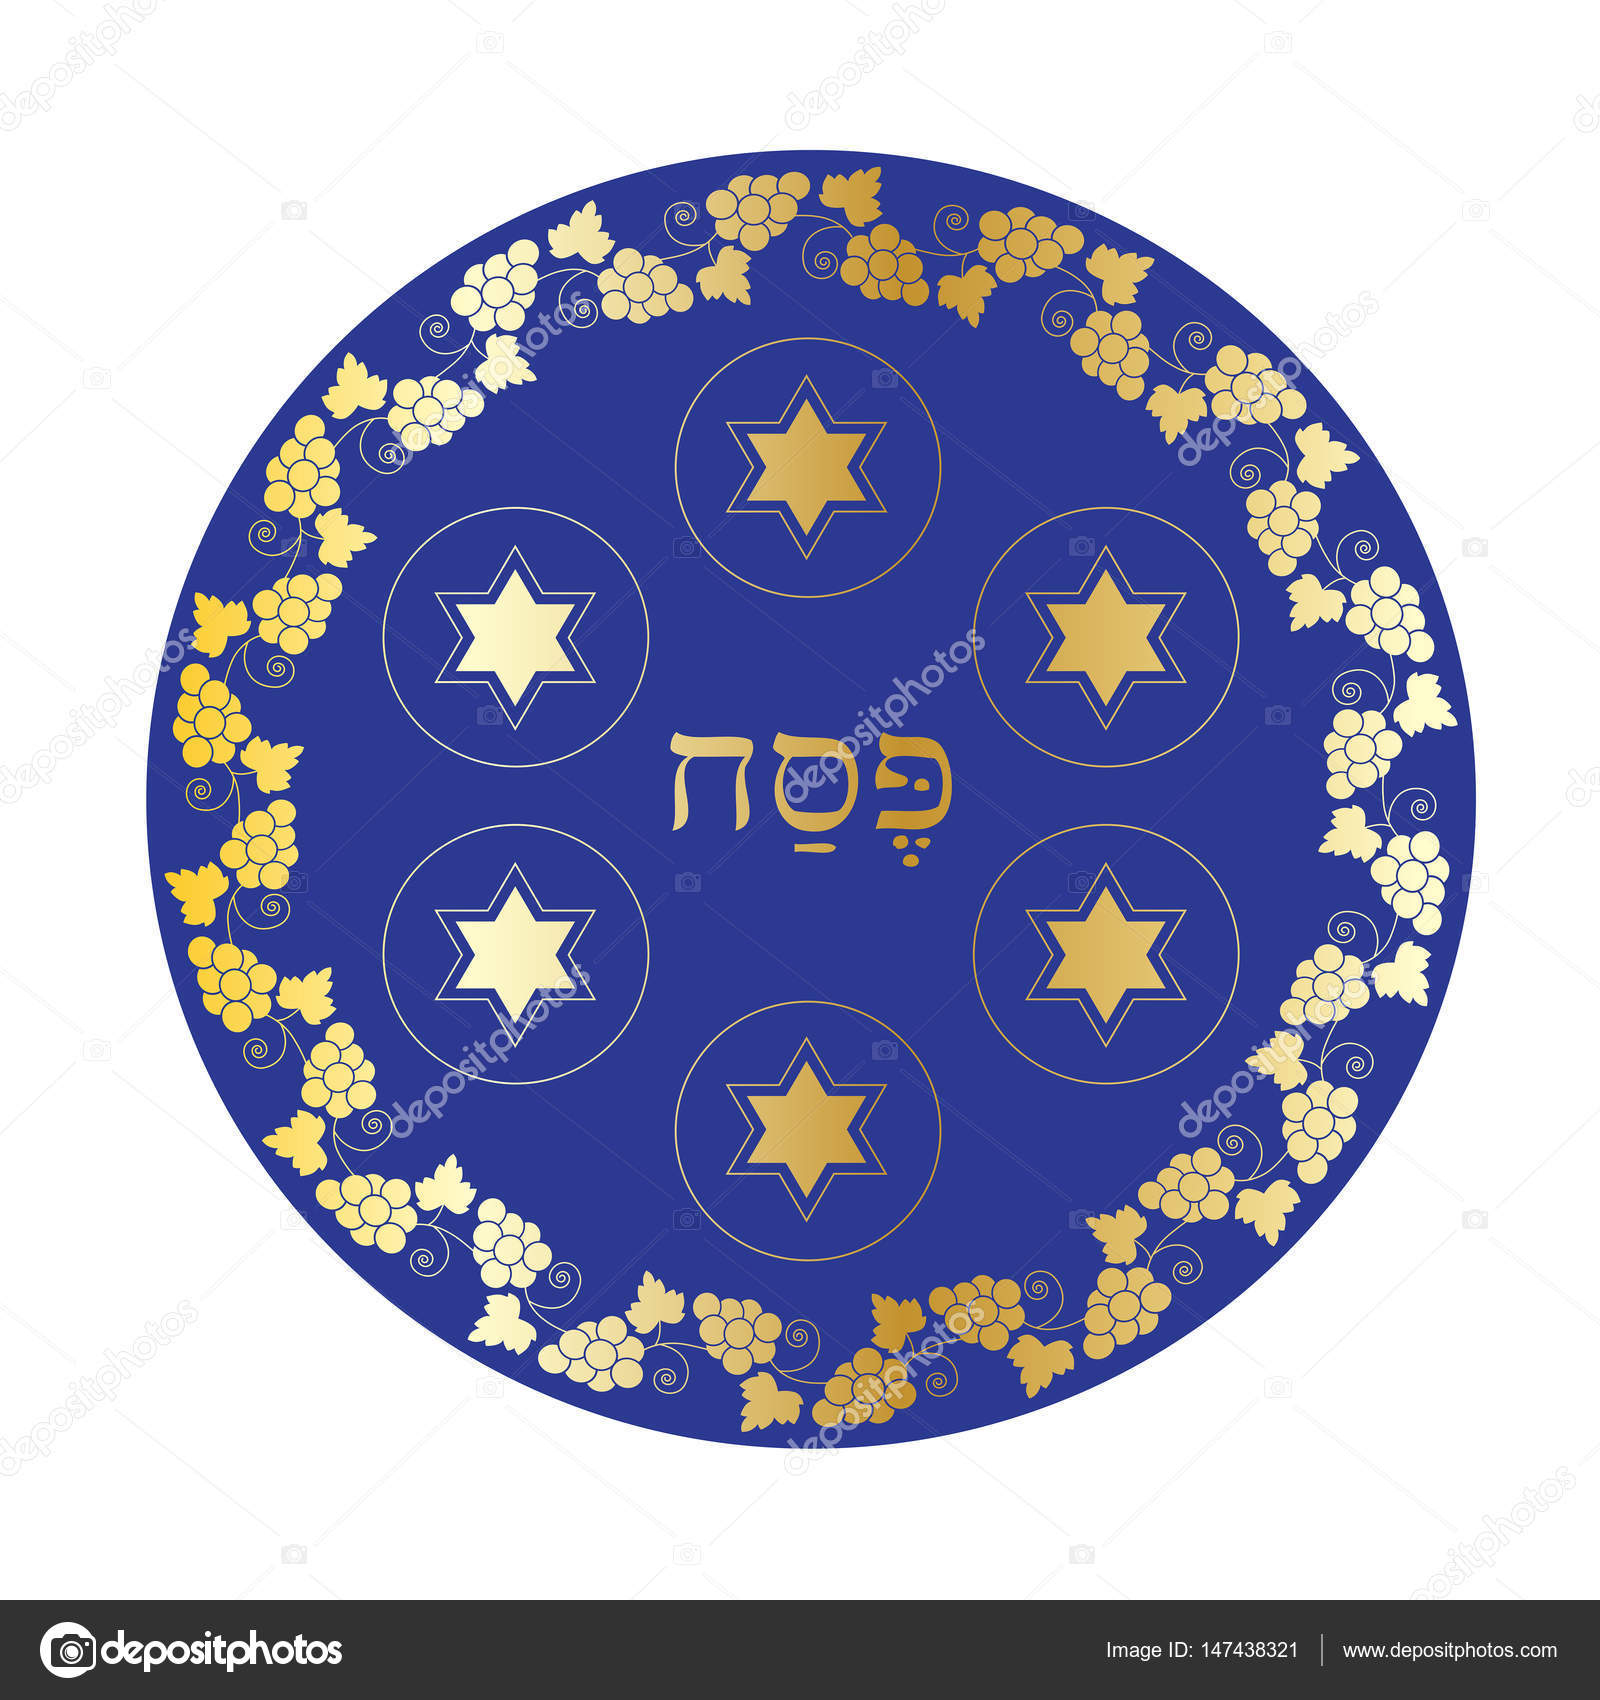 Passover seder plate with grapevine border stock vector blue passover seder plate with gold grapevine border isolated on white background vector by scrapster buycottarizona